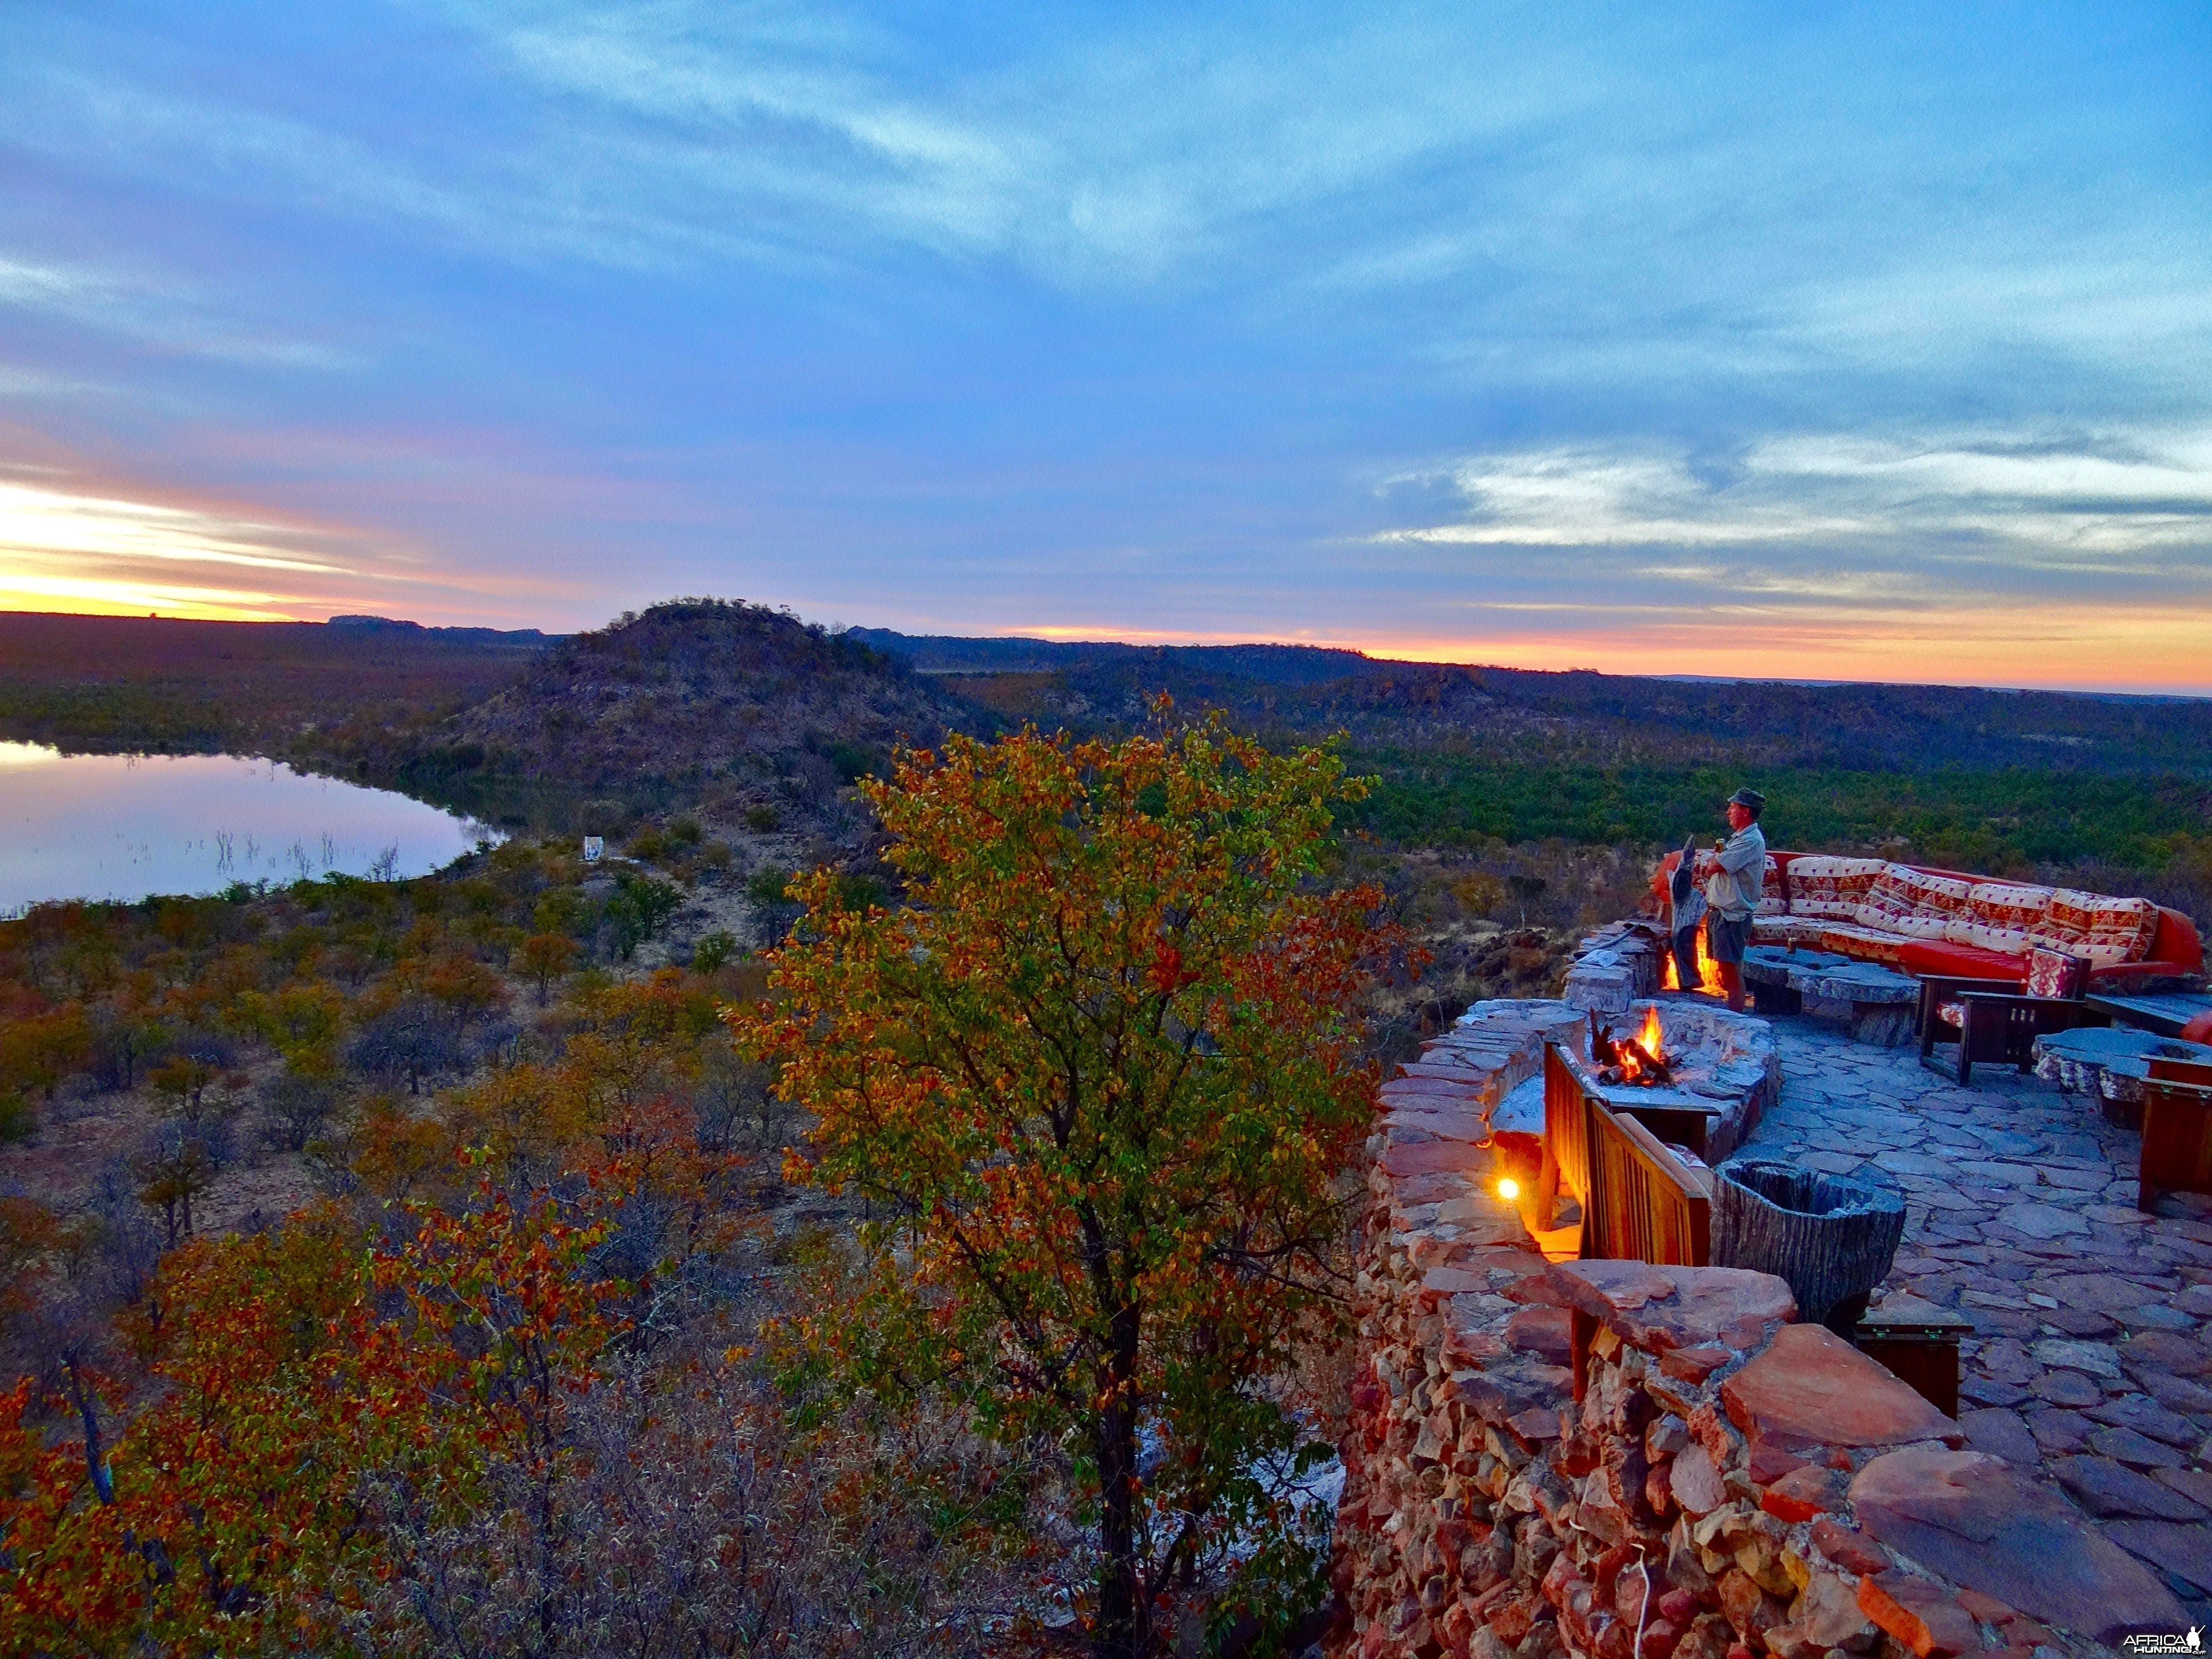 Limpopo Safari Camp ~ Limpopo Province, South Africa